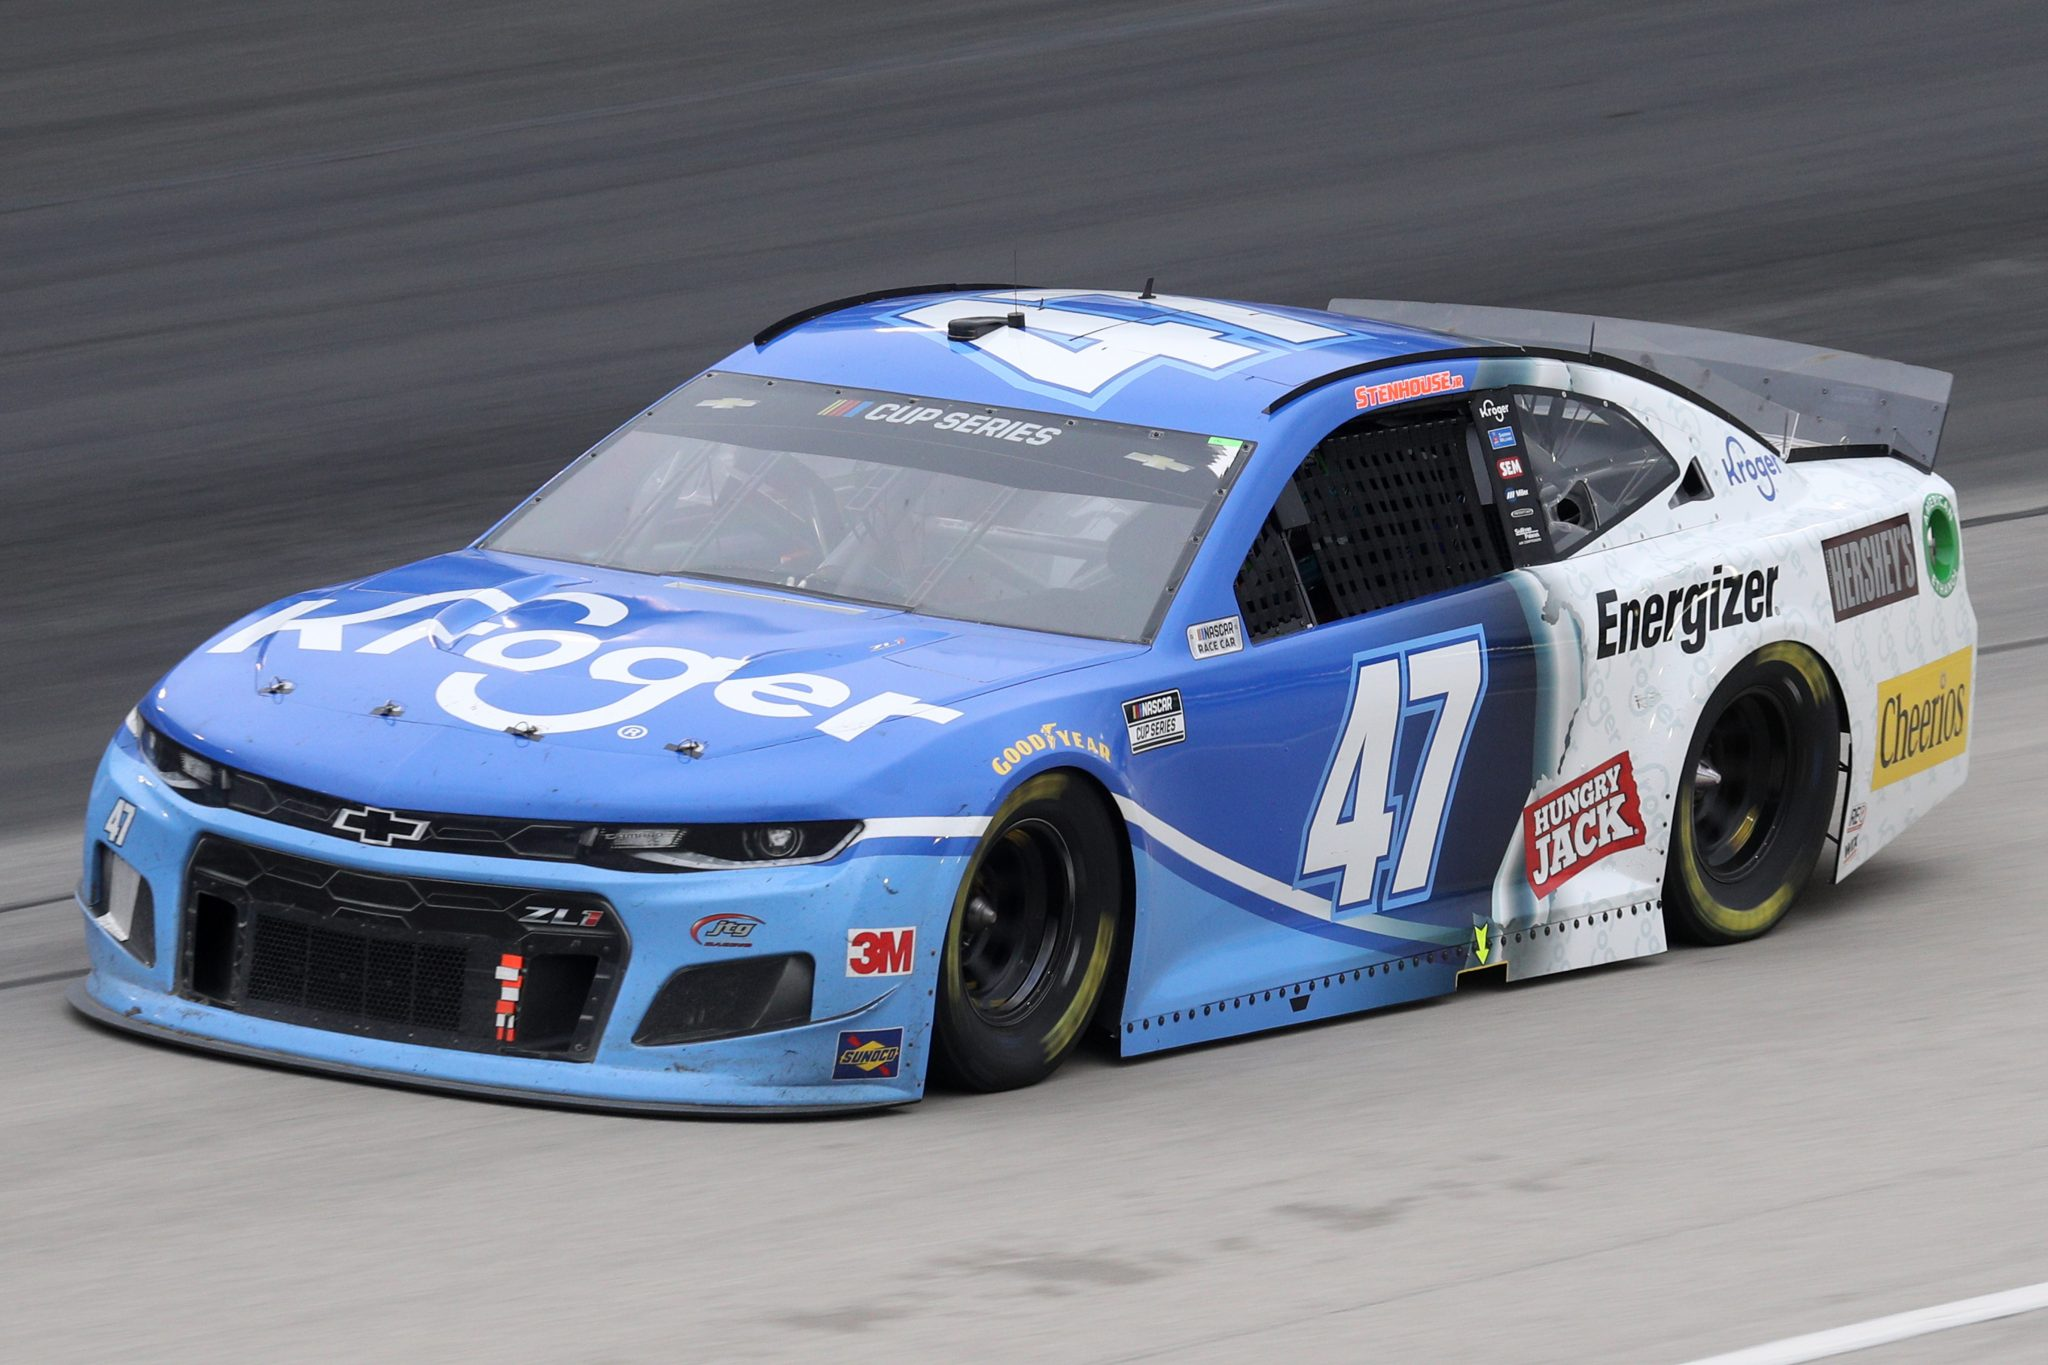 FORT WORTH, TEXAS - OCTOBER 28: Ricky Stenhouse Jr., driver of the #47 Kroger Chevrolet, drives during the NASCAR Cup Series Autotrader EchoPark Automotive 500 at Texas Motor Speedway on October 28, 2020 in Fort Worth, Texas. (Photo by Chris Graythen/Getty Images)   Getty Images